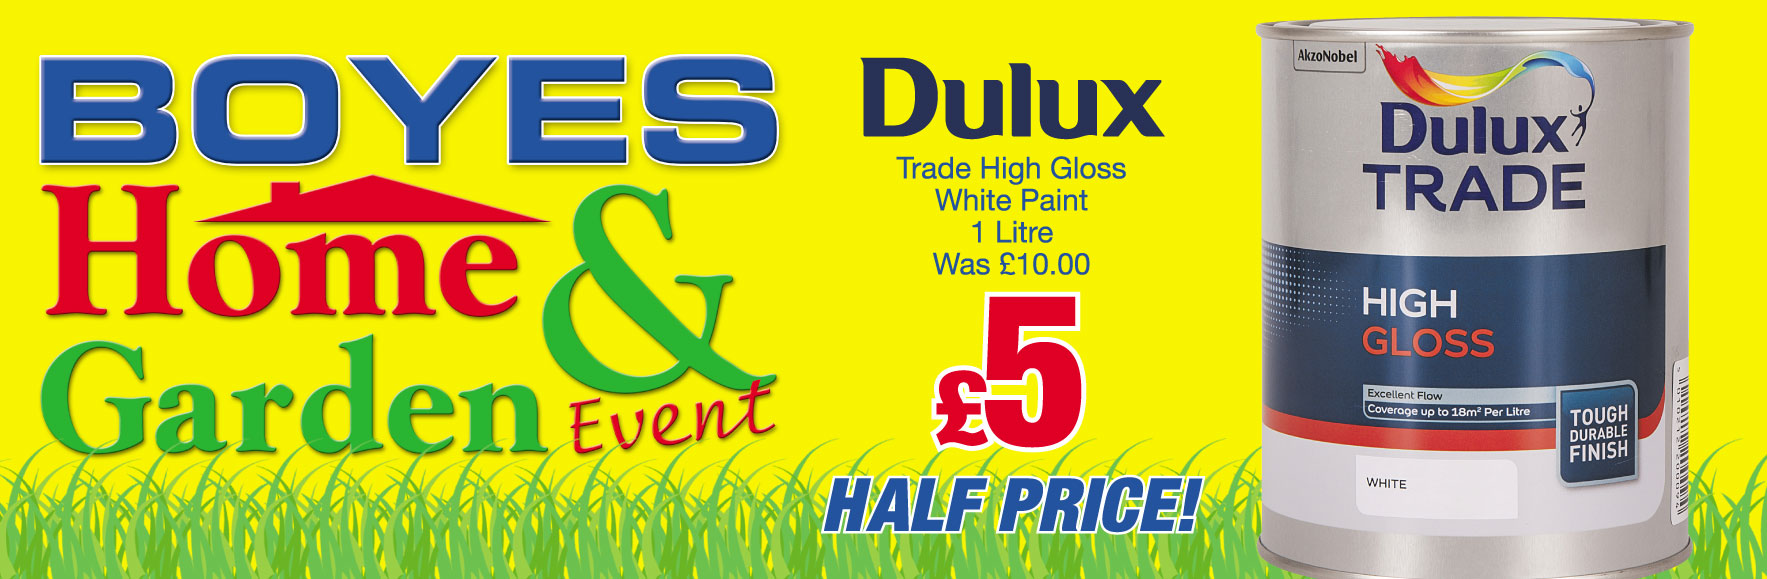 Dulux Trade High Gloss White Paint 1 Litre Was £10 NOW £5